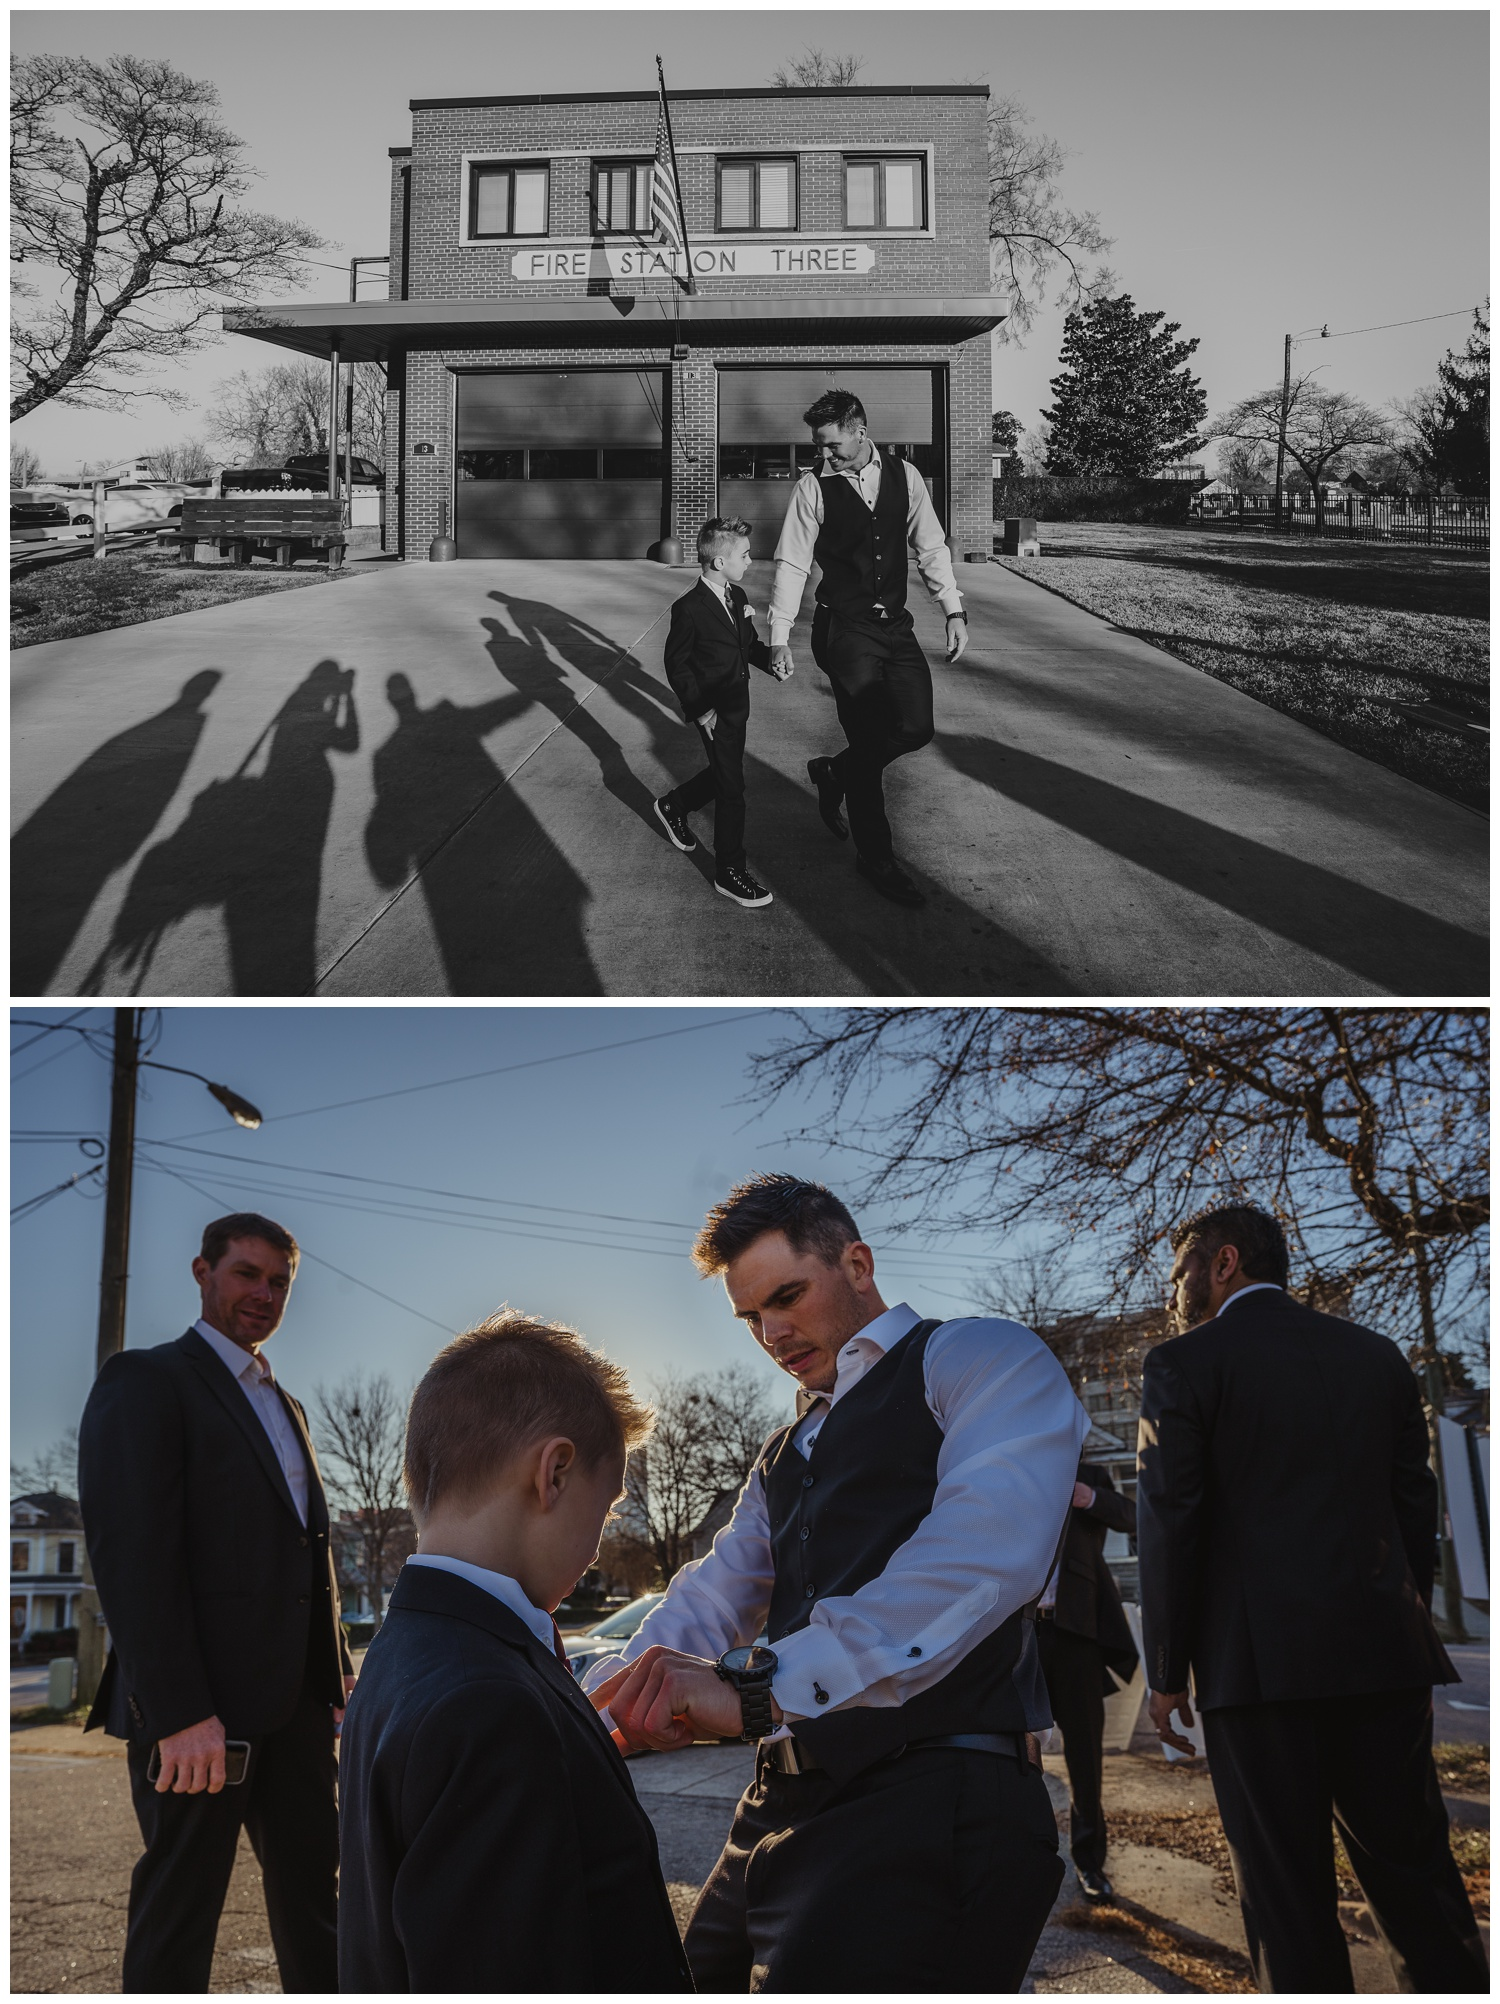 The groom walked with his young son outside before his wedding ceremony at All Saints Chapel in Raleigh, North Carolina, pictures by Rose Trail Images.